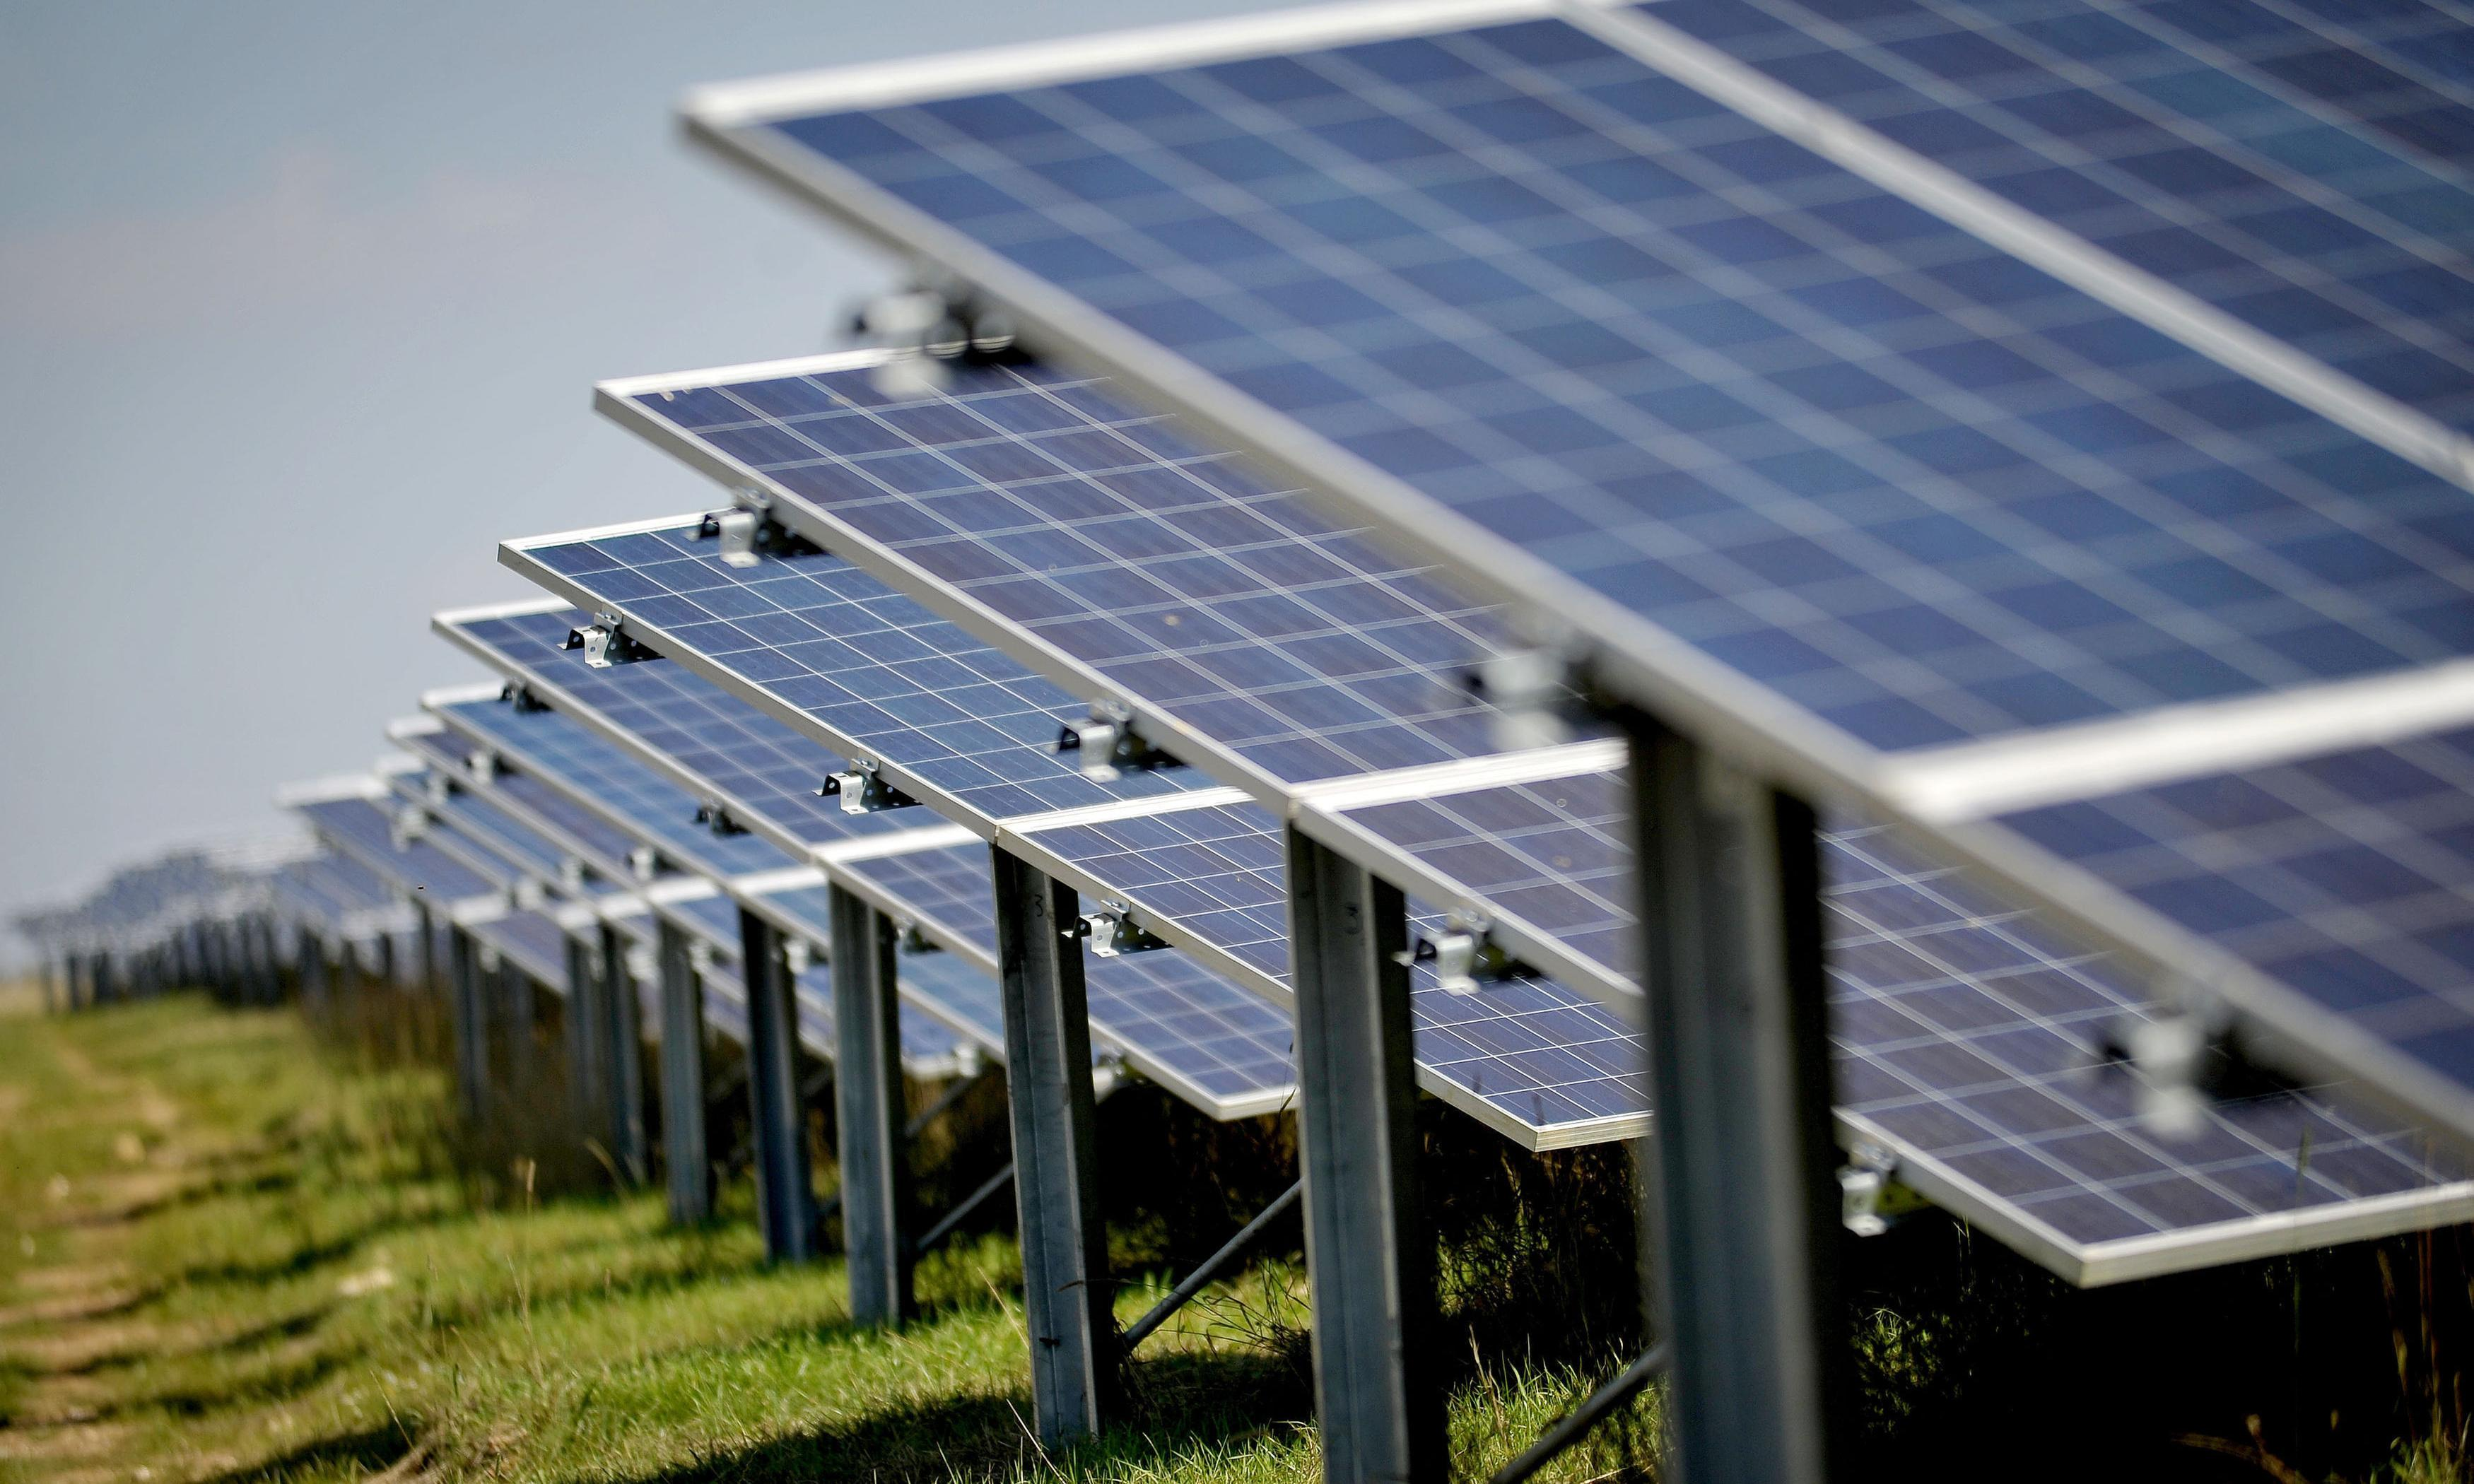 Scottish Power to invest in solar energy for the first time